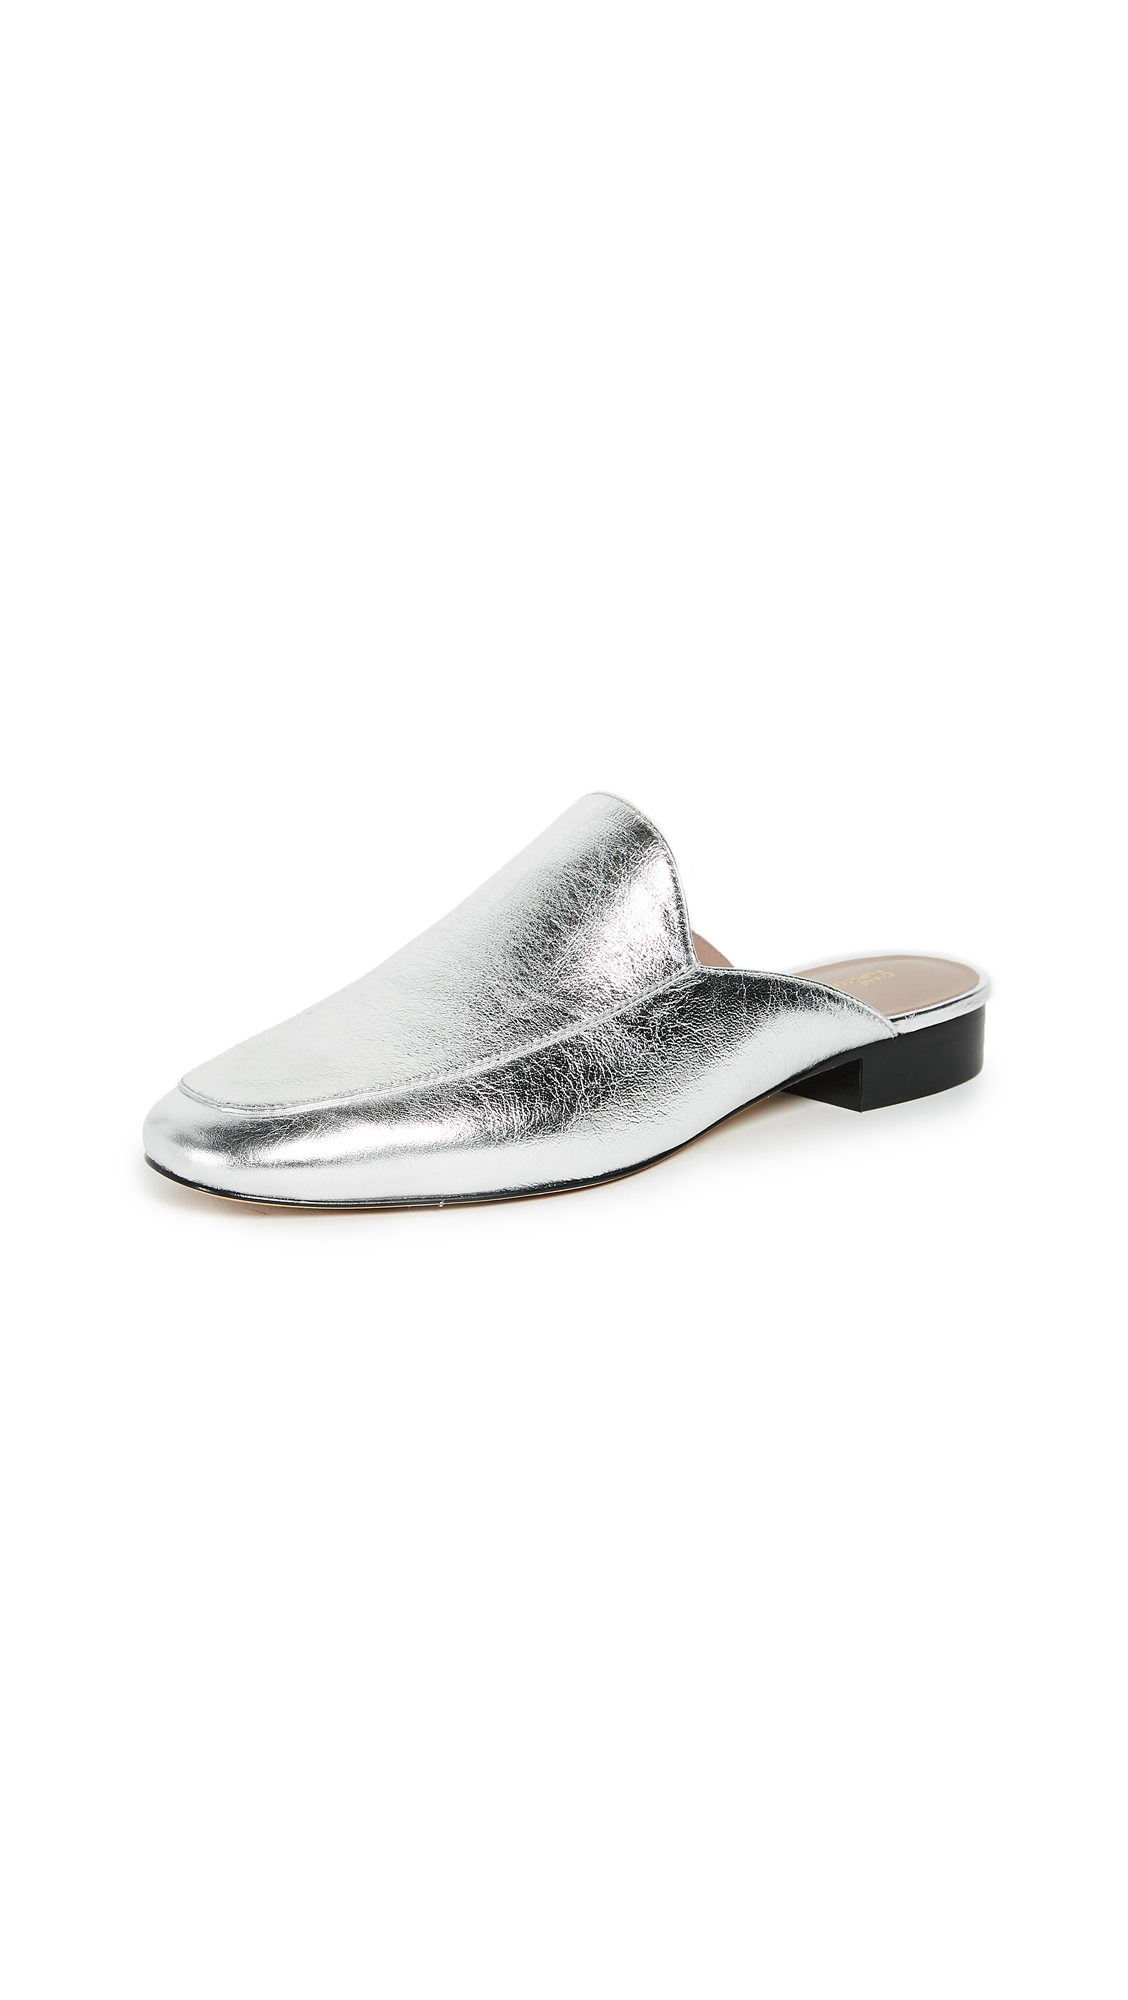 Diane von Furstenberg Lexington Mules - Metallic Silver